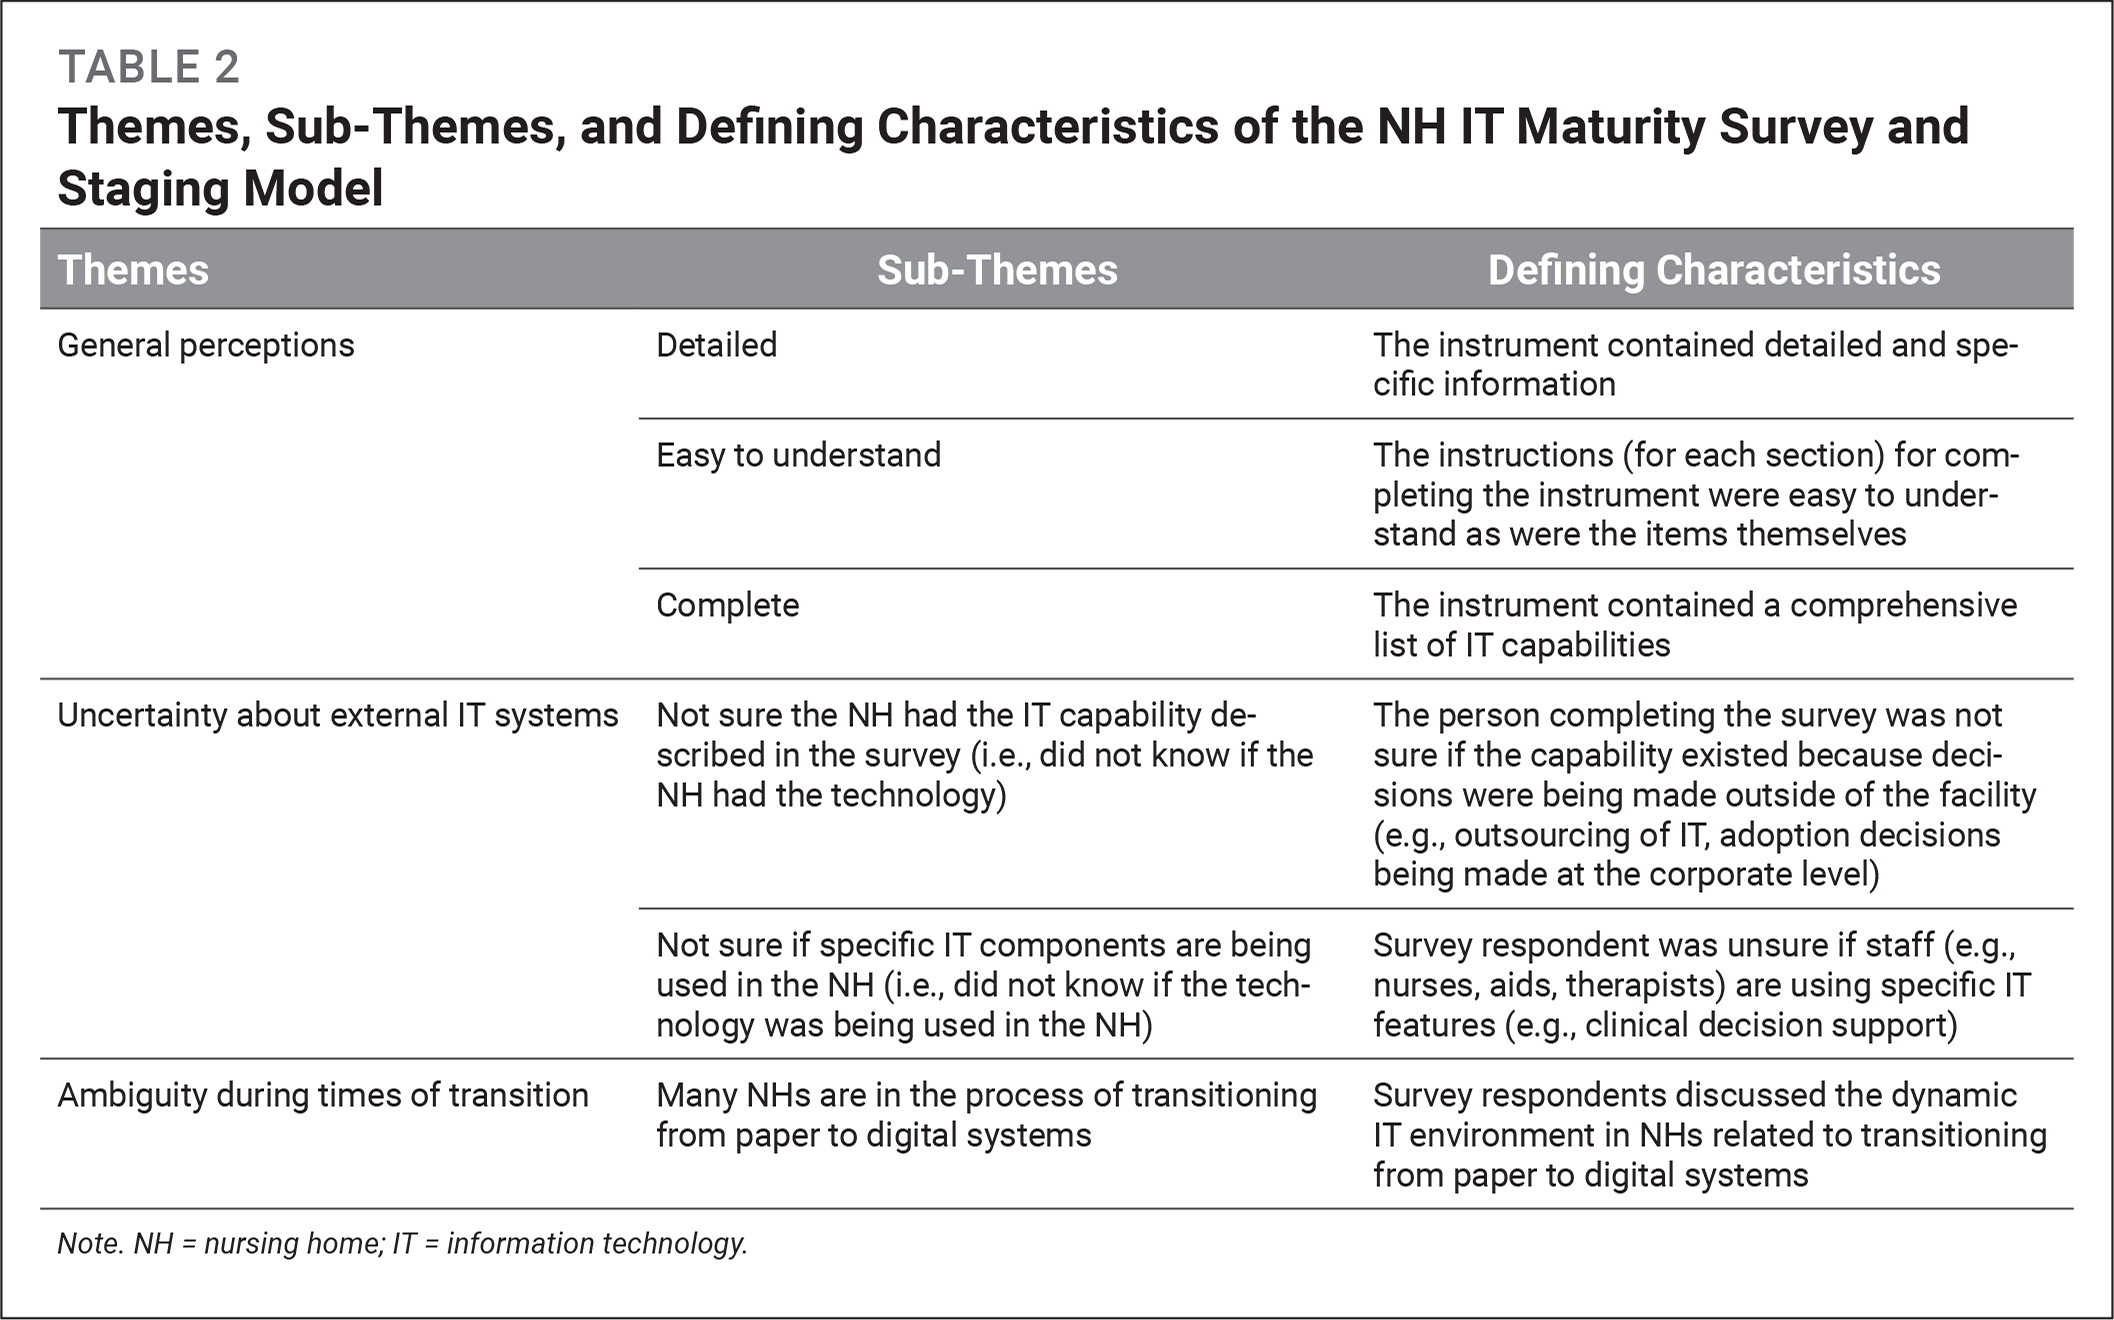 Themes, Sub-Themes, and Defining Characteristics of the NH IT Maturity Survey and Staging Model